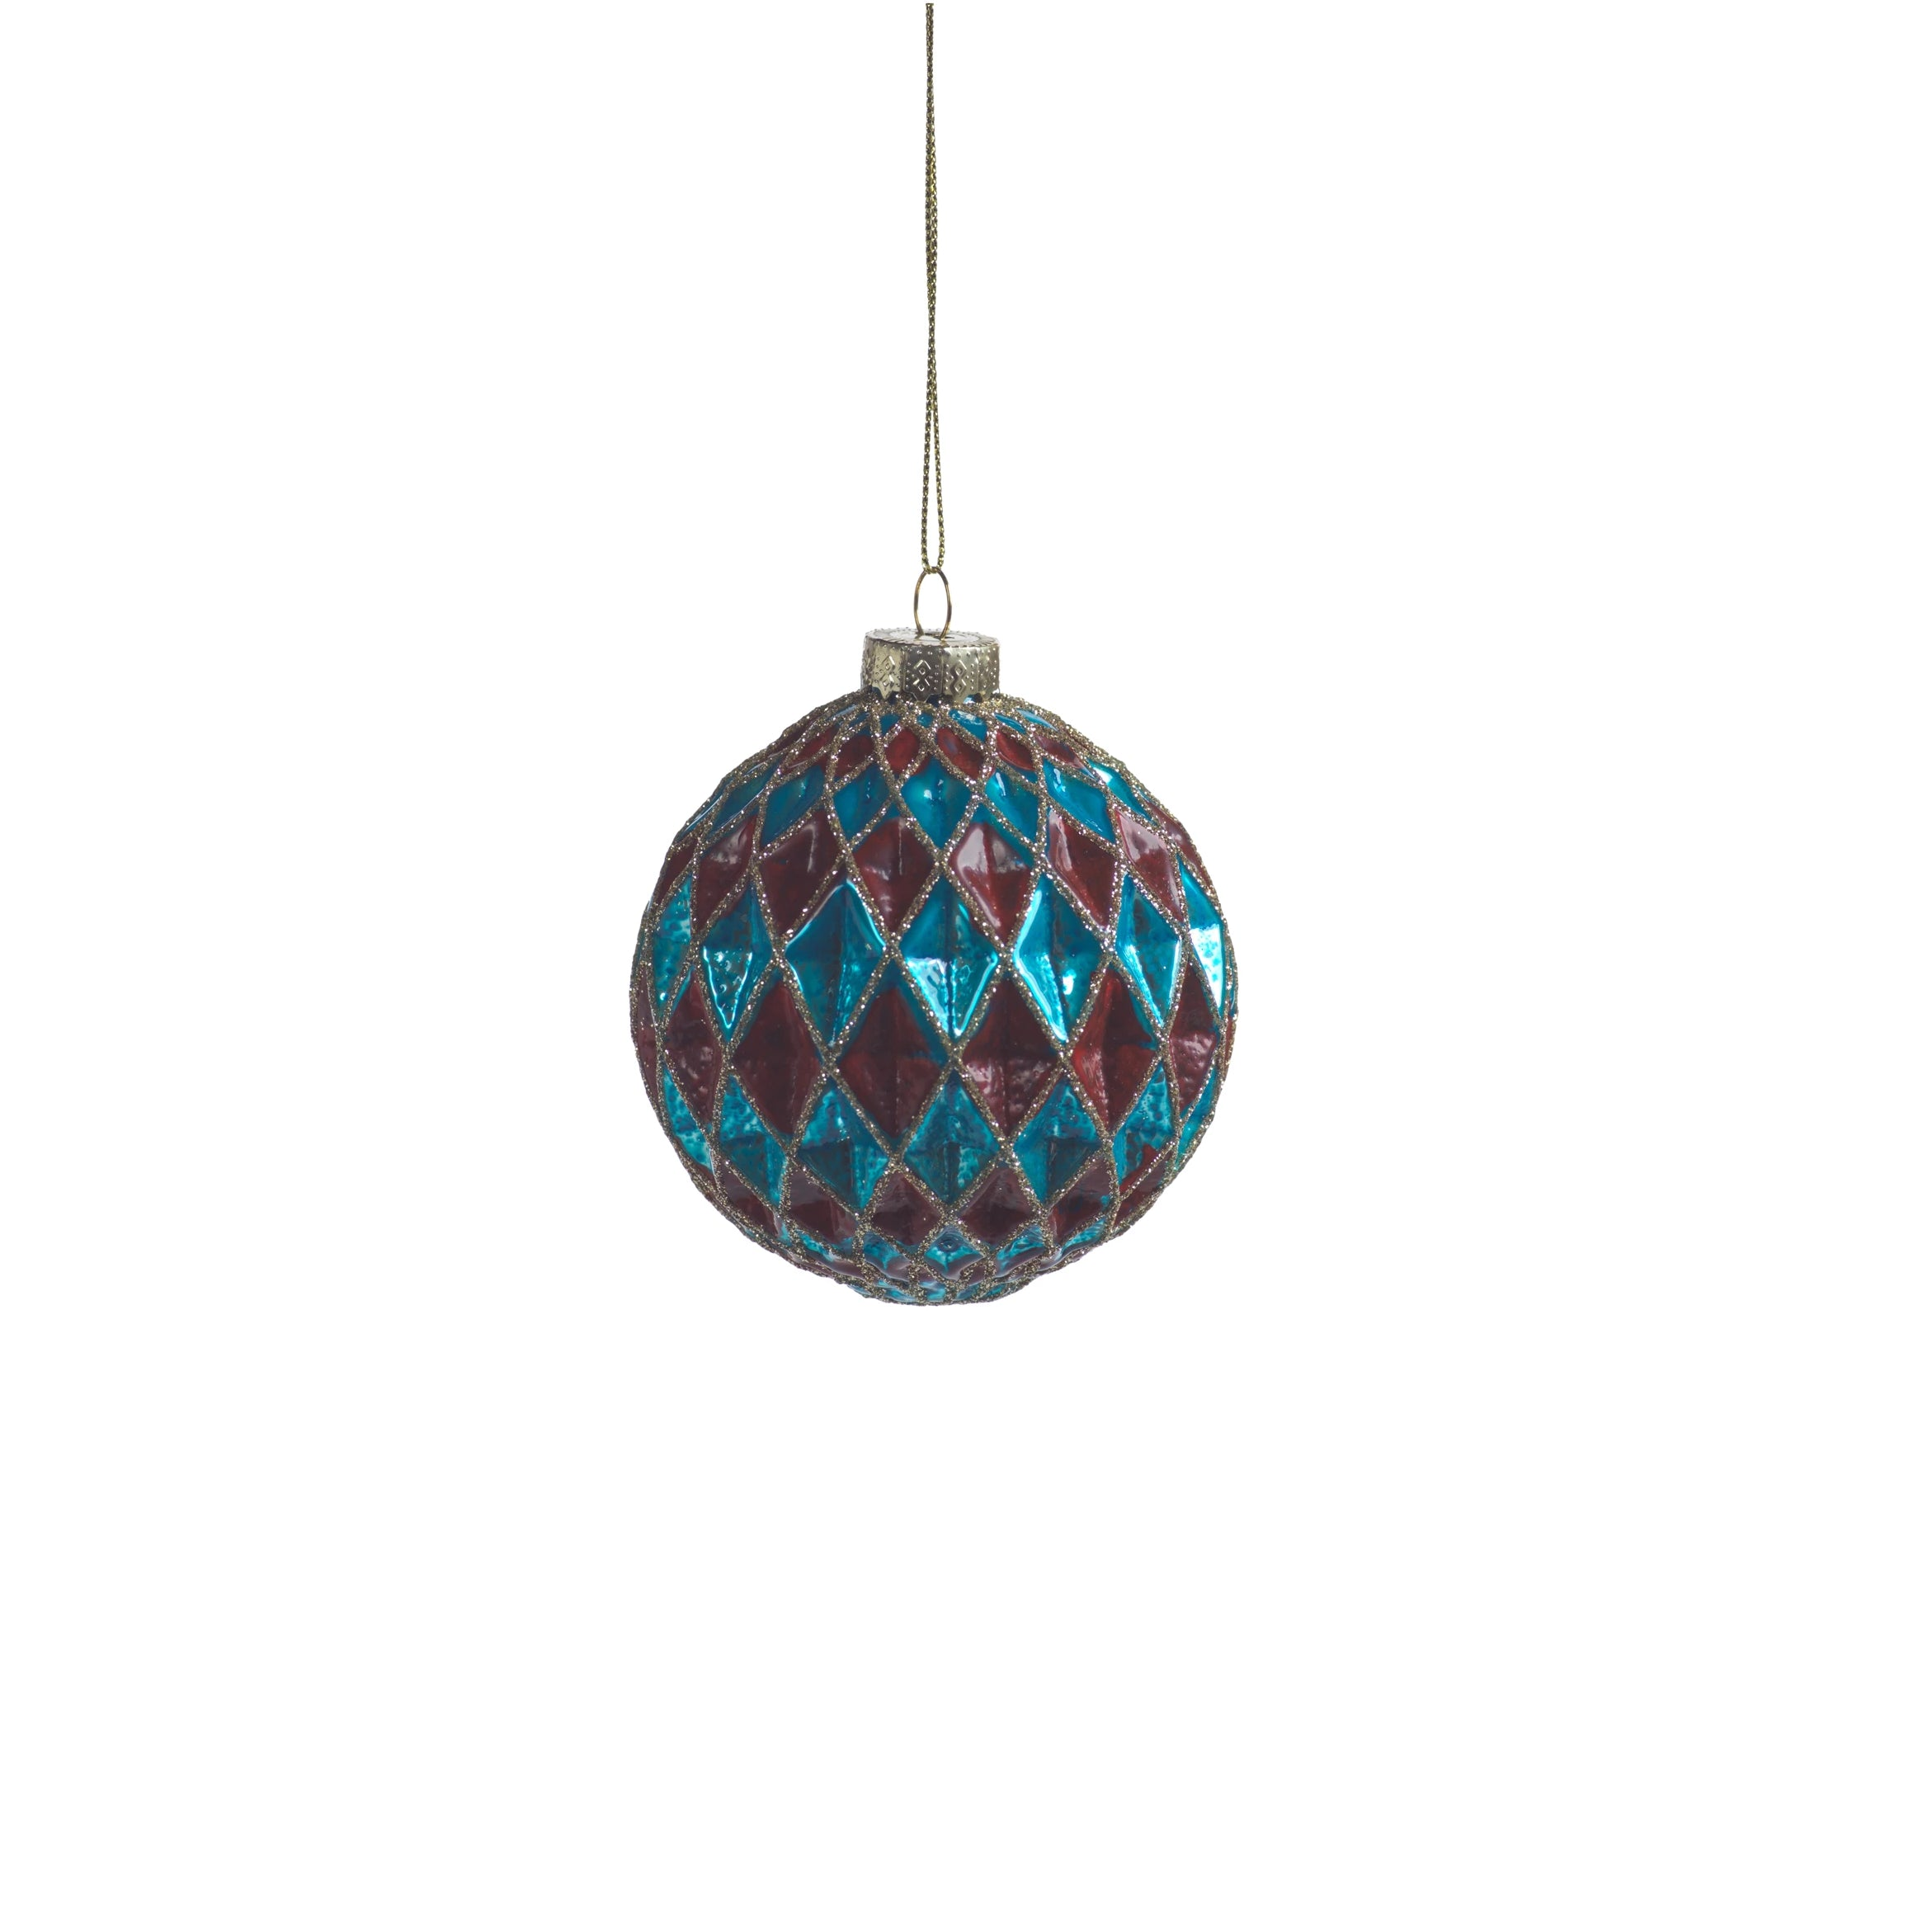 Carnival Ball Ornament - Blue & Red - CARLYLE AVENUE